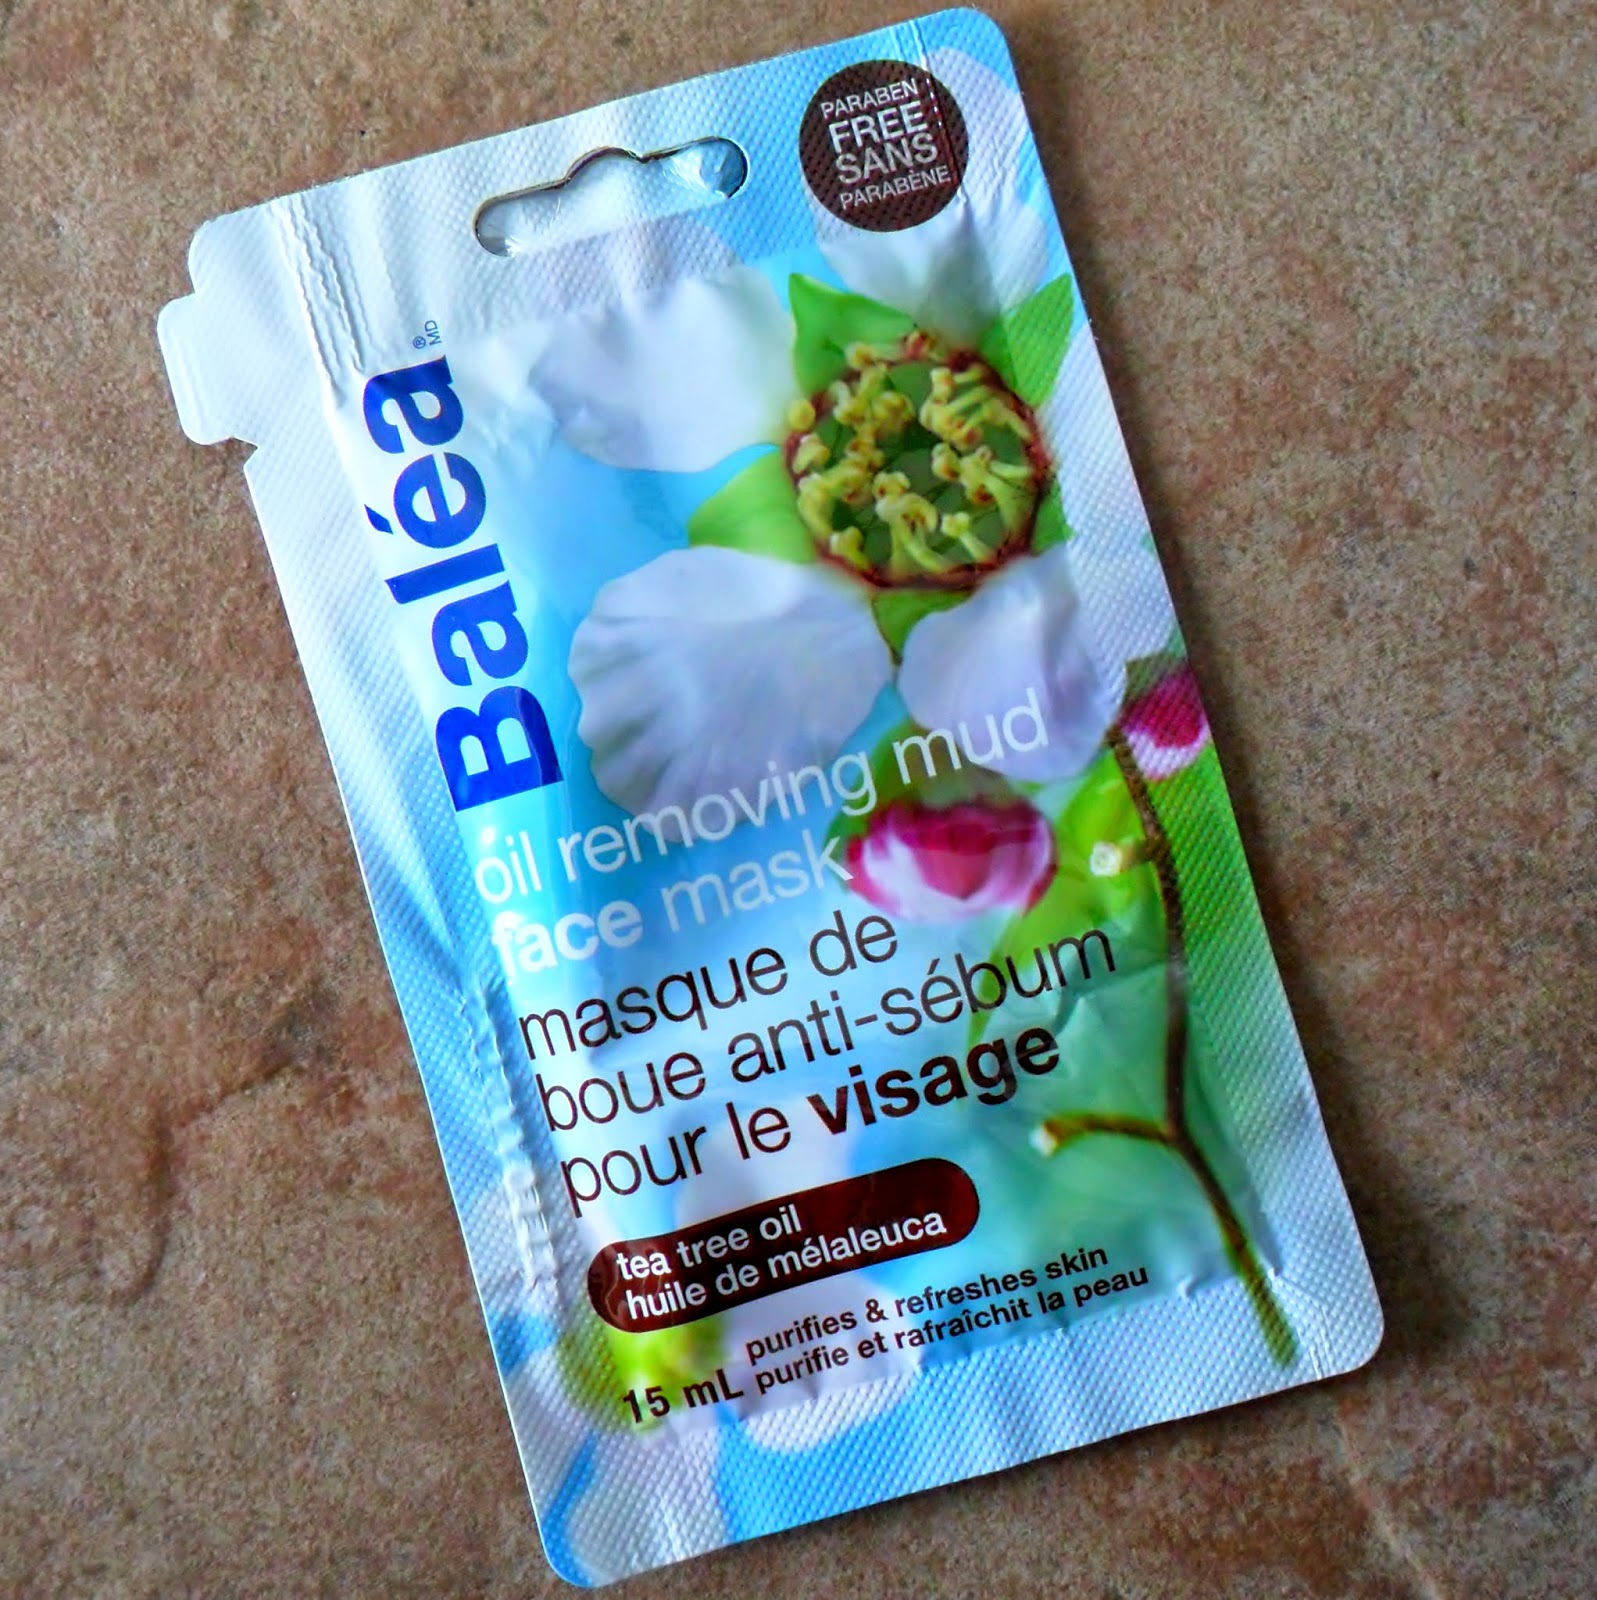 Review: Balea Oil Removing Mud Face Mask with Tea Tree Oil